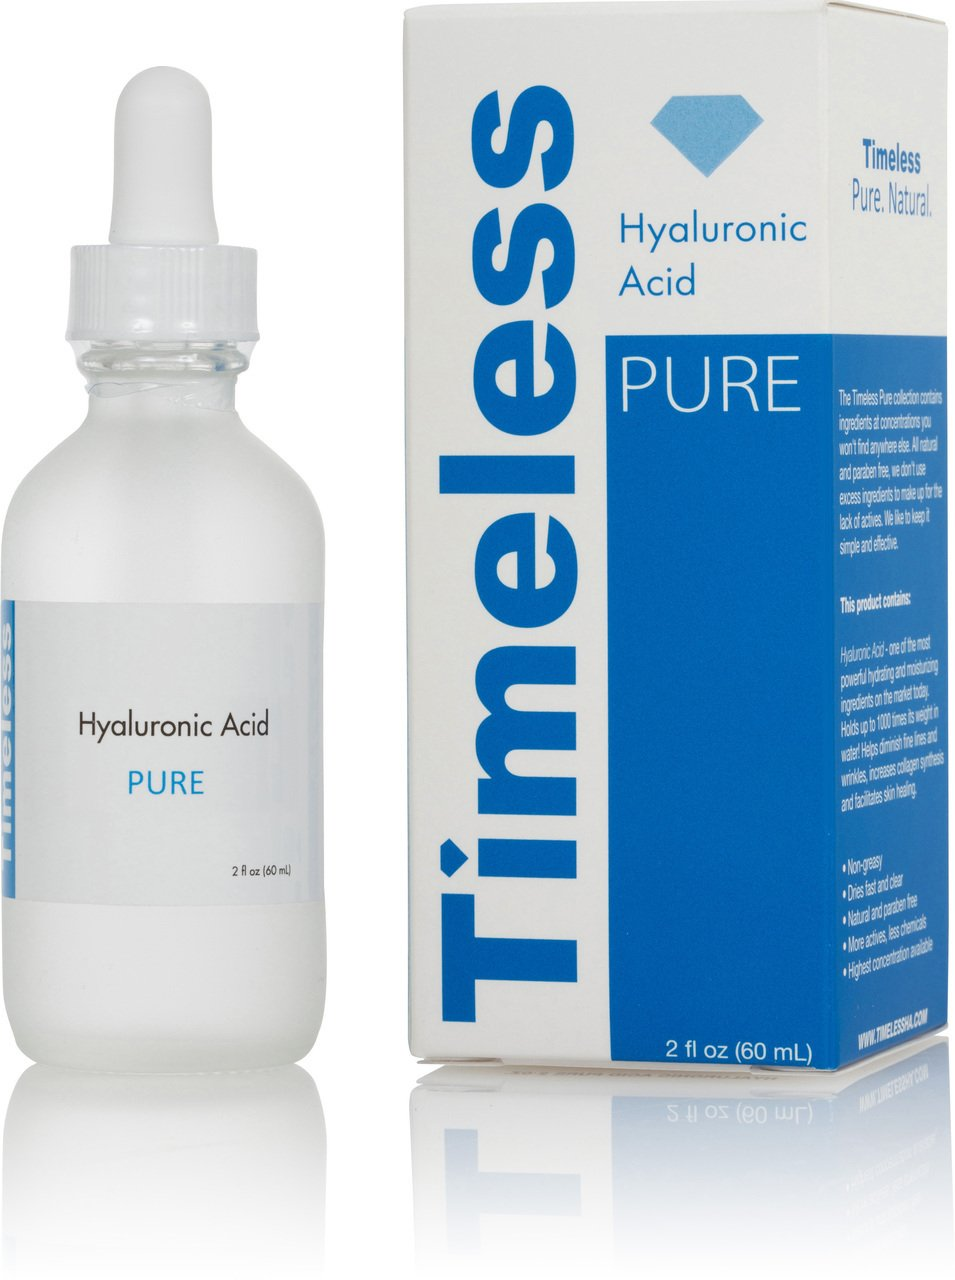 The Original Hyaluronic Acid Serum 100% Pure 2 oz.